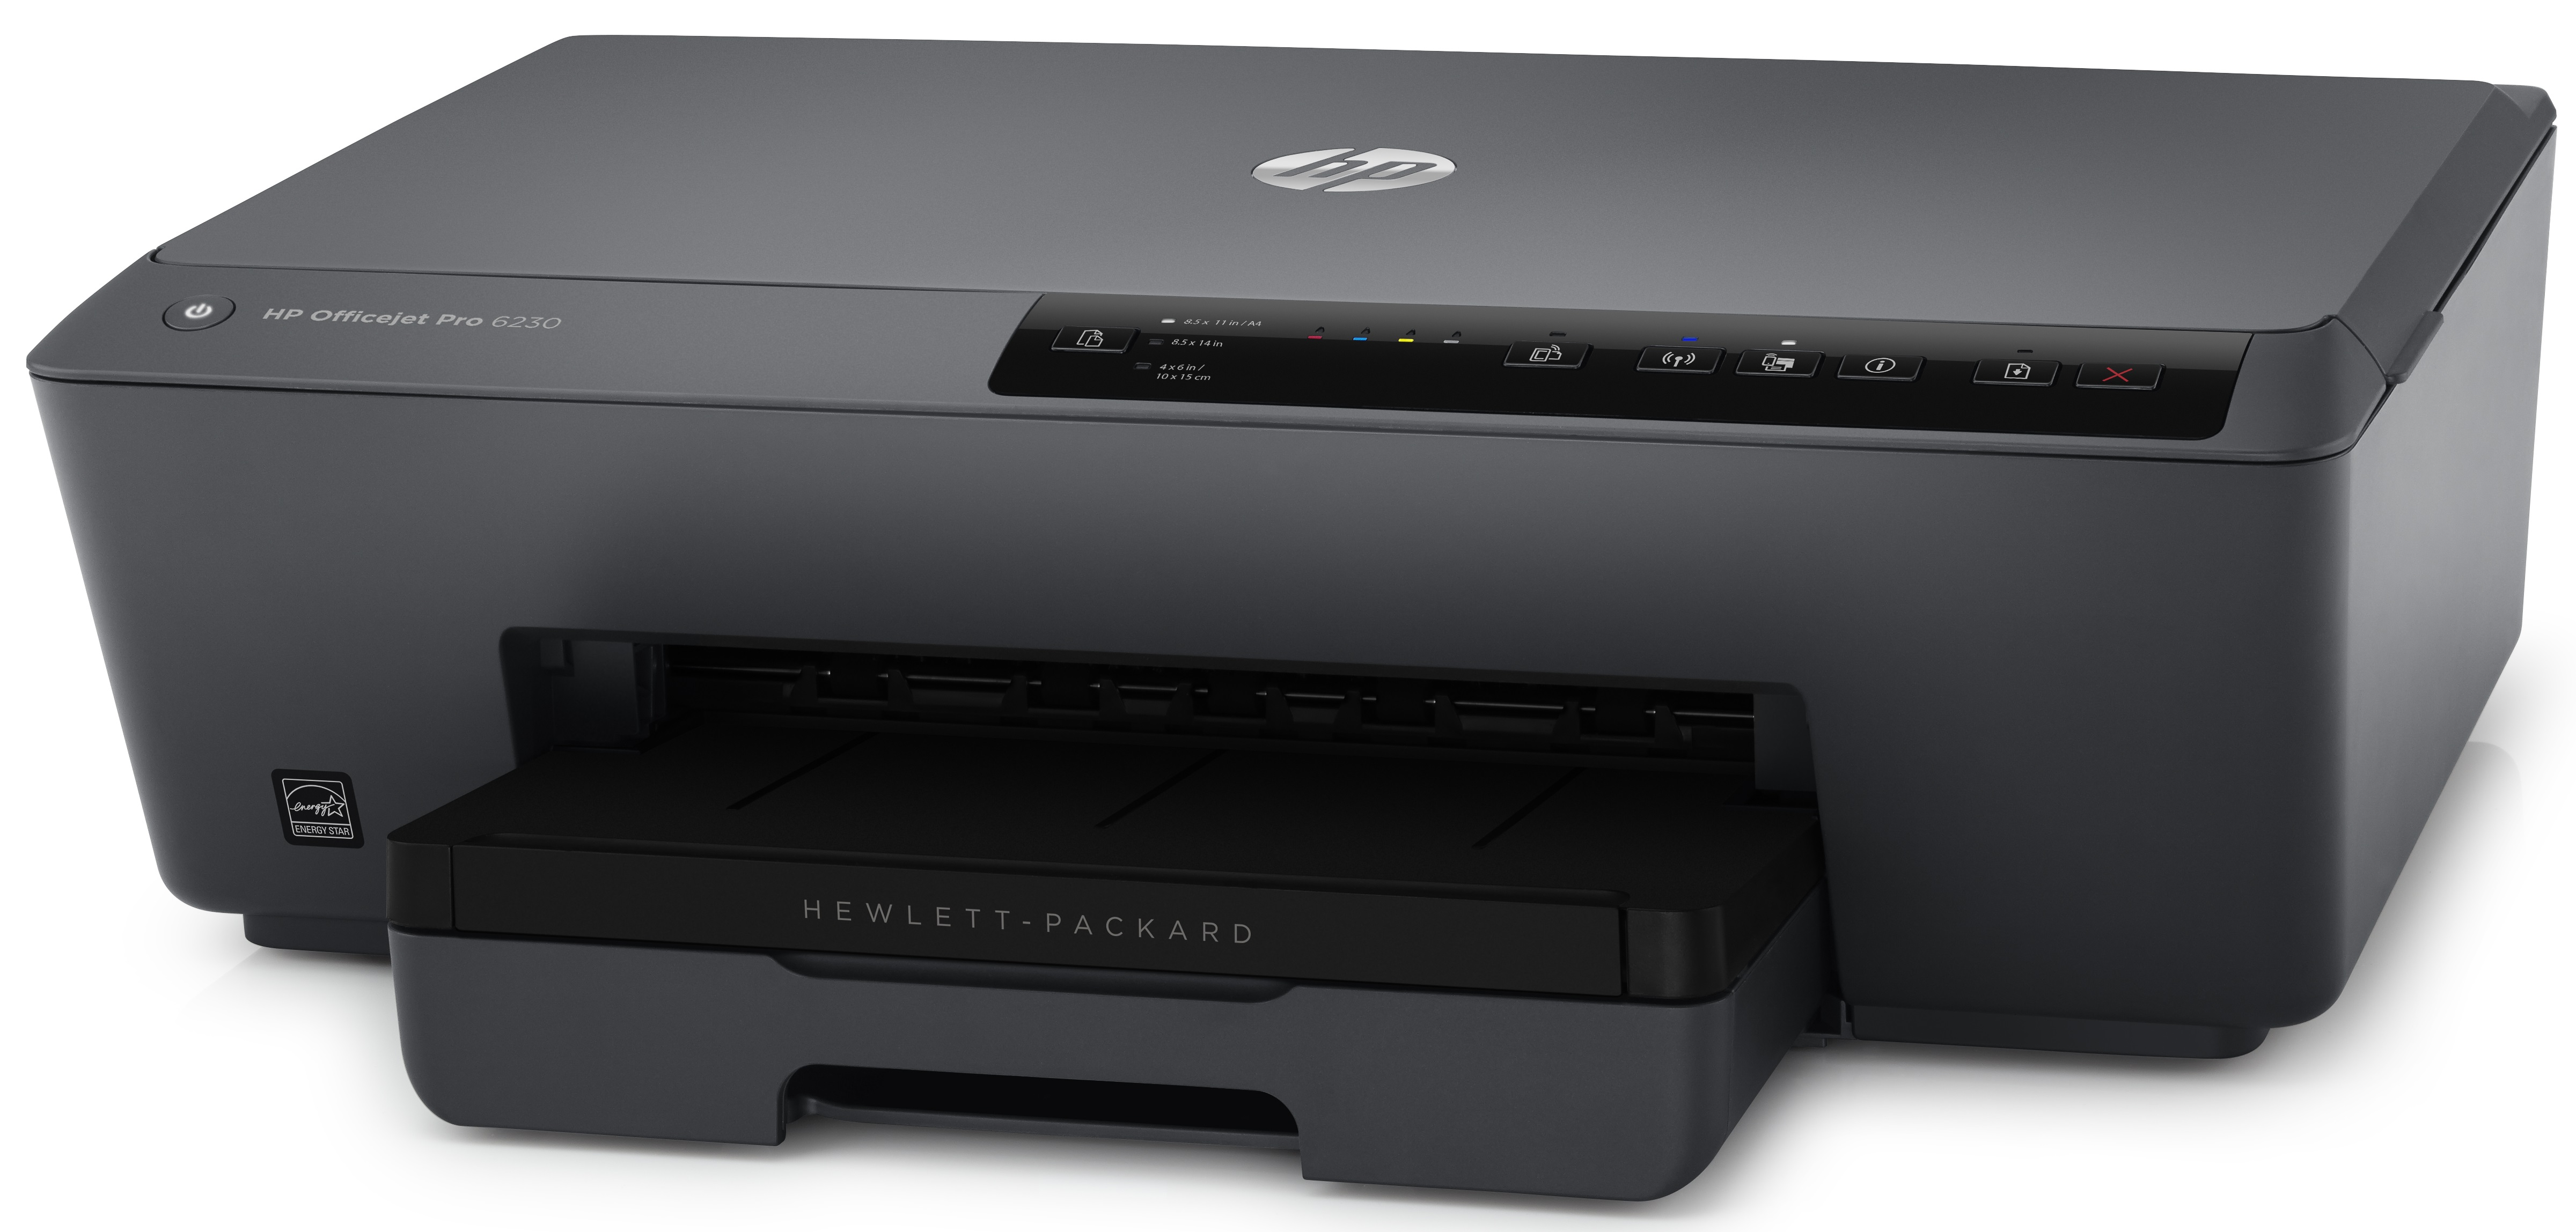 Best Wireless Laser Printer Under 100 Wire Center Circuitdiagram Automotivecircuit Irremotecontroldimmercircuit 2018 The Inkjet And Printers For Office Or Rh Expertreviews Co Uk